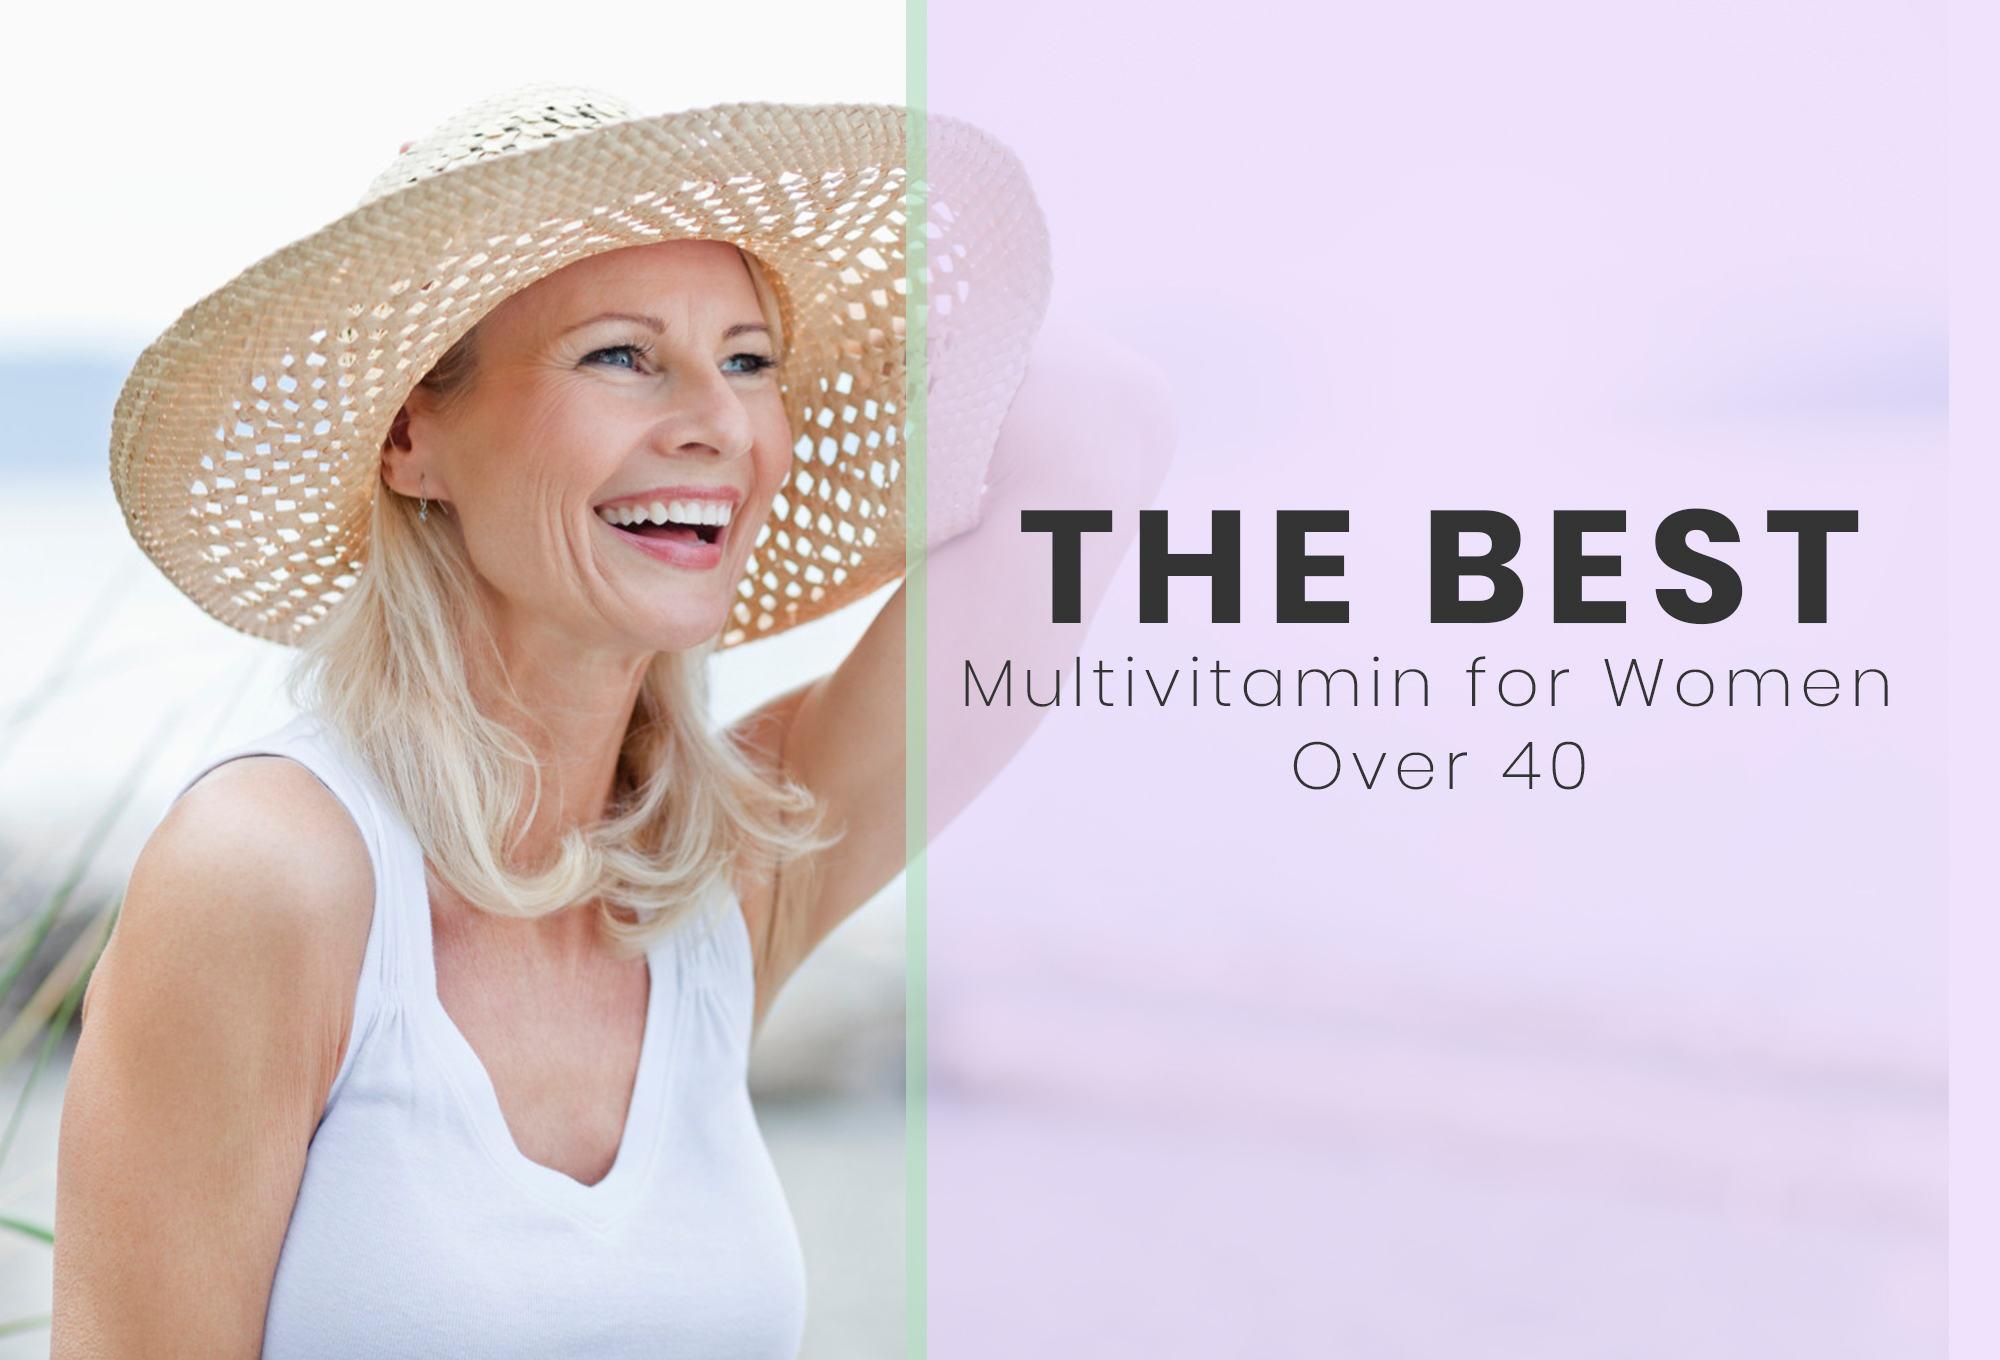 Best Multivitamin for Women Over 40 - September, 2019